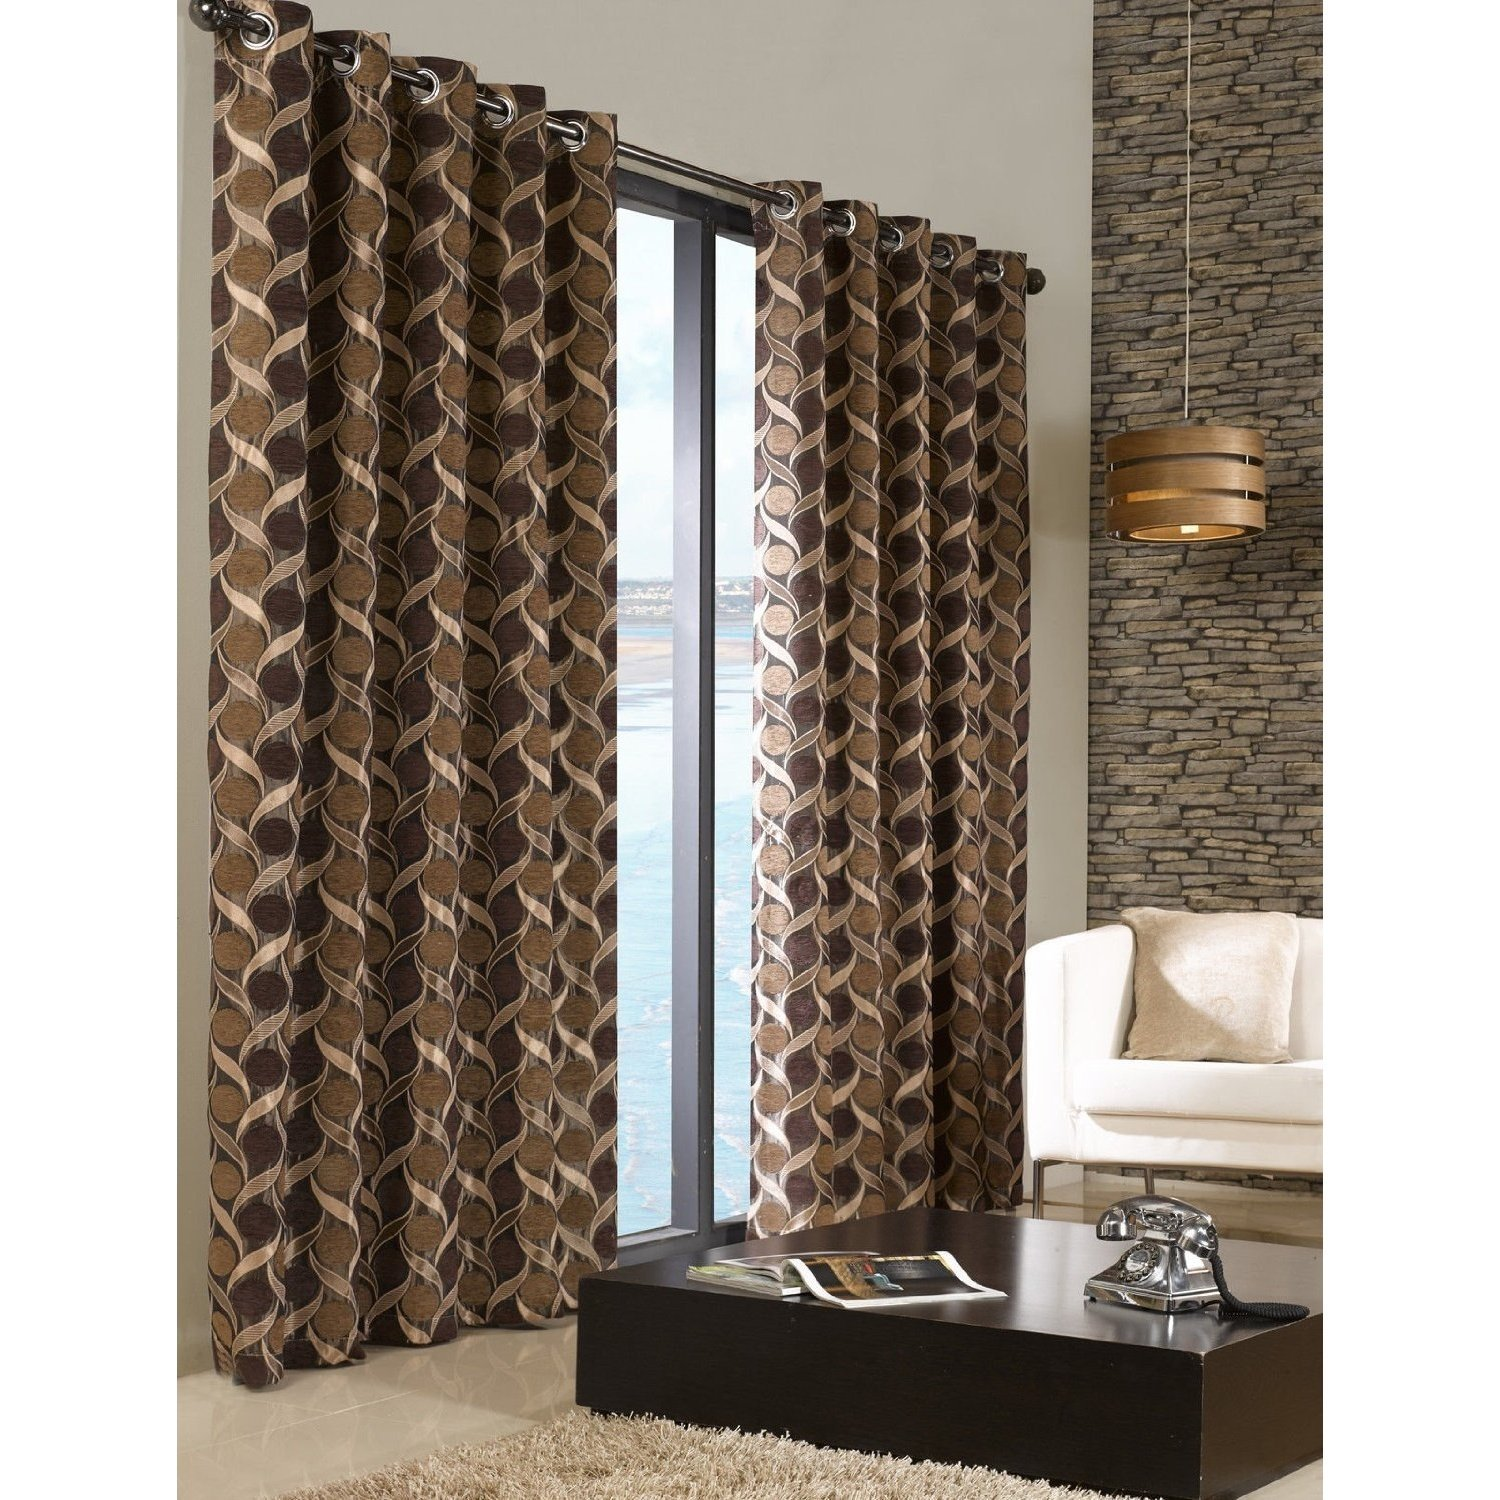 Chenille Patterned Fully Lined Eyelet Ring Top Curtains. Kathy Ireland Living Room Furniture. Photo Wallpaper For Living Room. 3 Piece Living Room Table Set. Nice Living Room Set. Metal Wall Art For Living Room. Decorating Living Room On A Budget. Best Living Room Lighting. Living Room Com